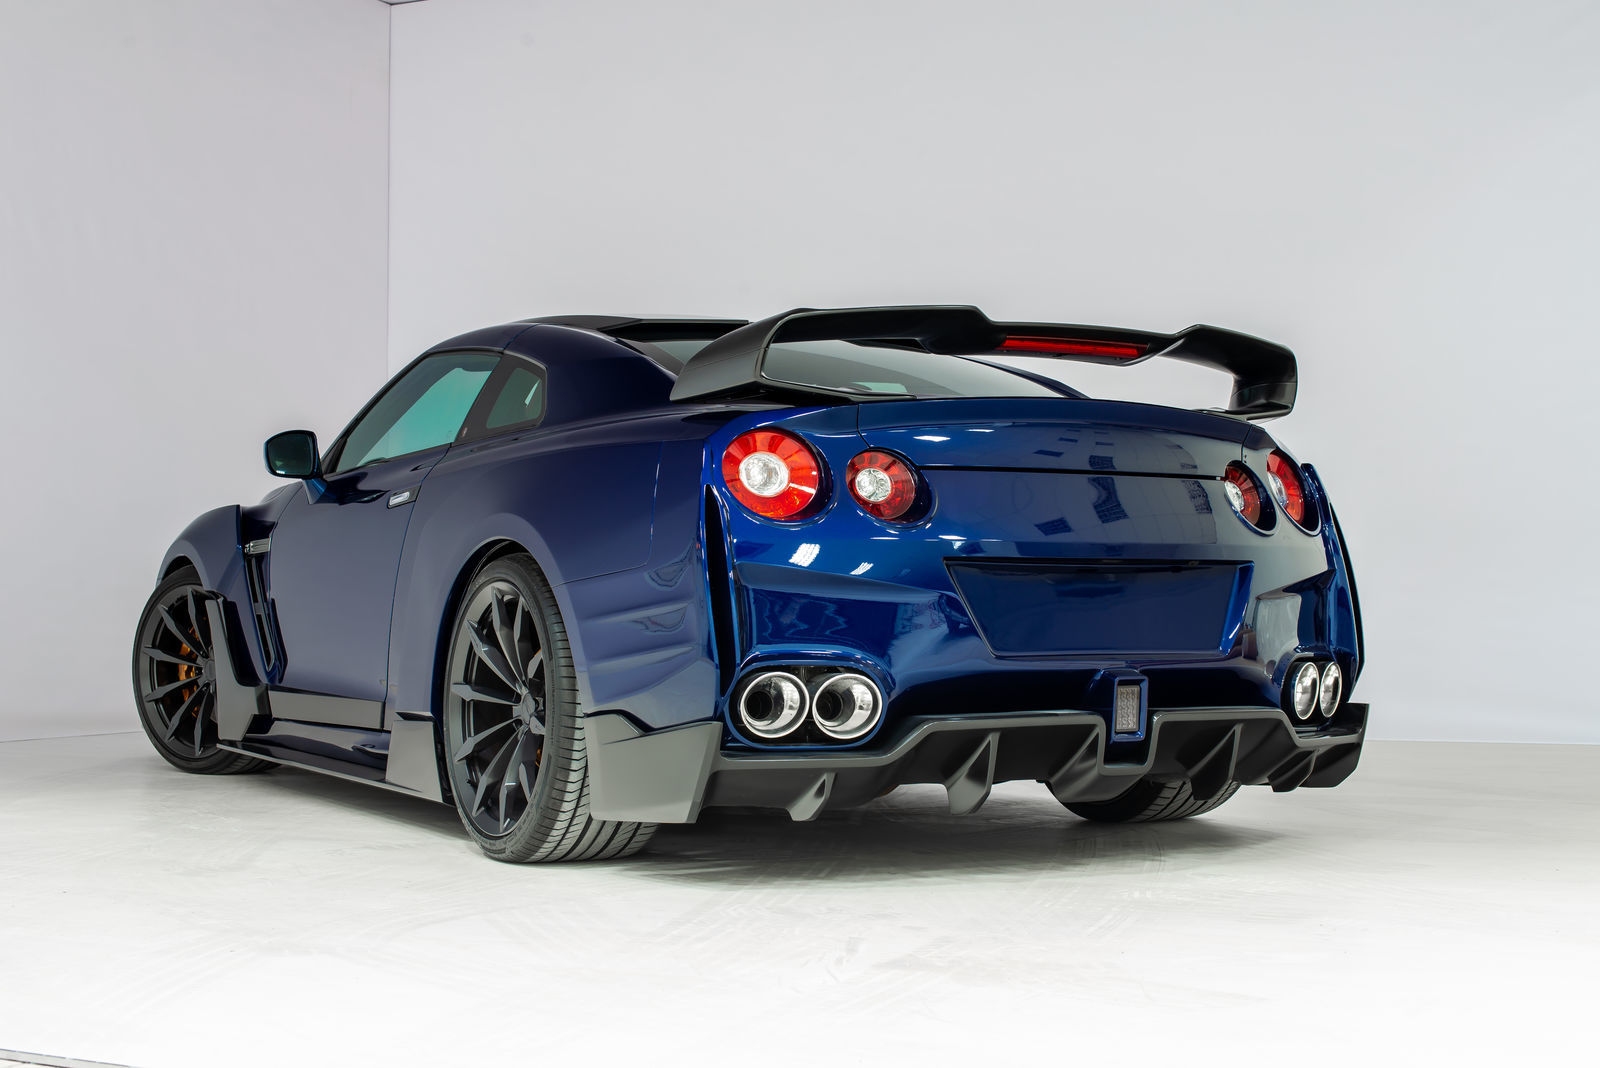 SCL PERFORMANCE GLOBAL body kit for Nissan GT-R GOJIRA 2020